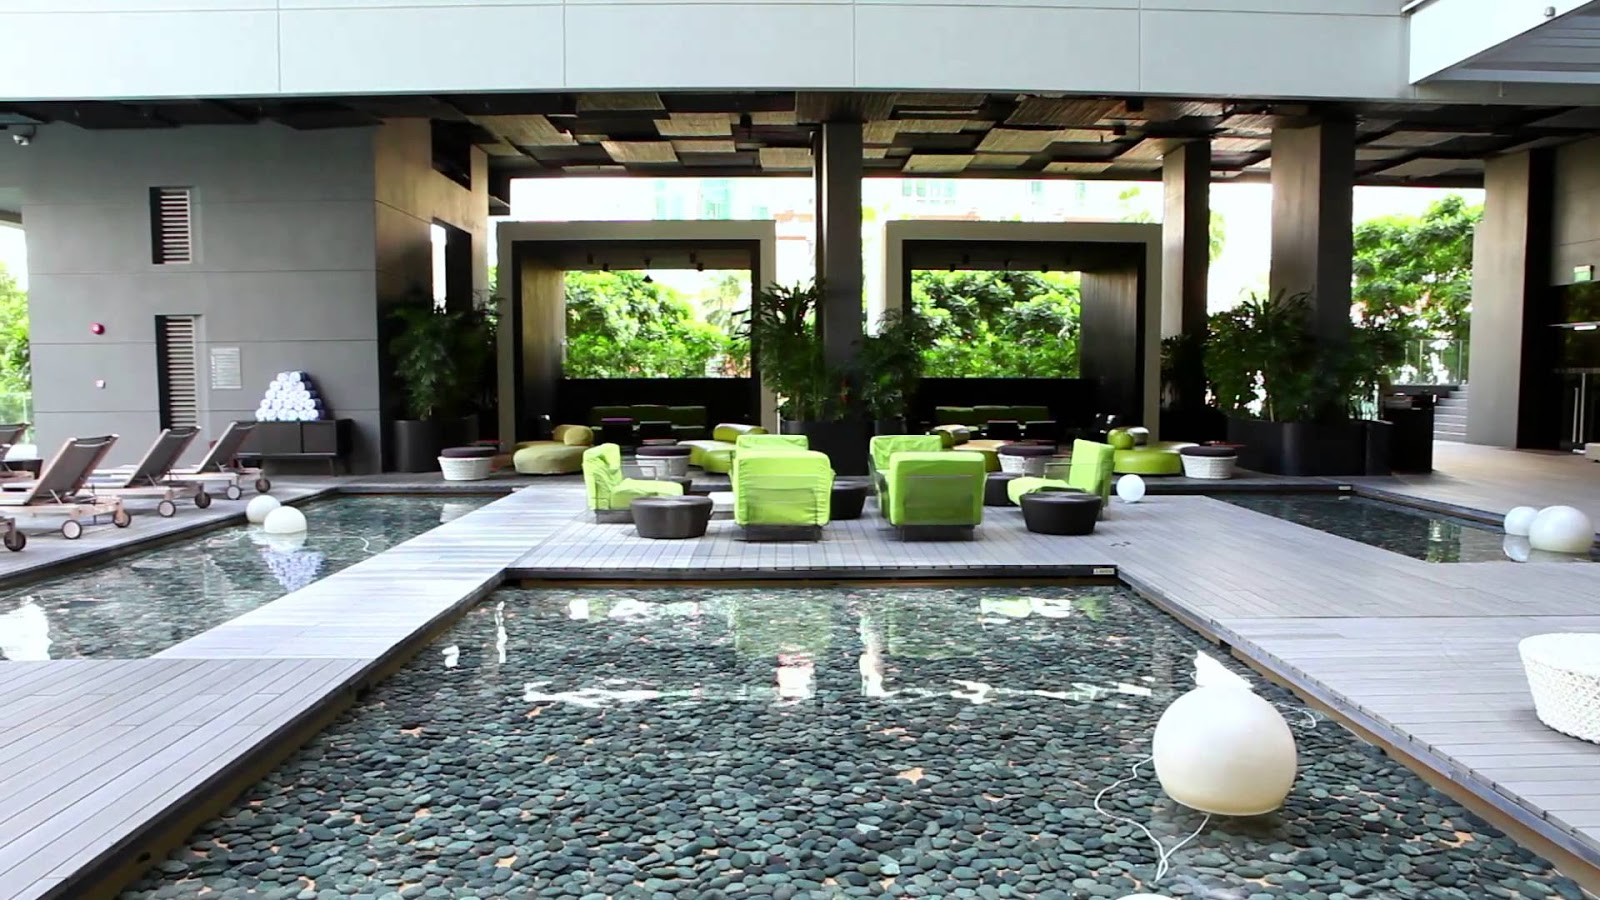 This Modern Hotel Is Notorious Because Of Its Creativity And The Beautiful Lobby Designs Lighting Ensuring A Unique Experience There No